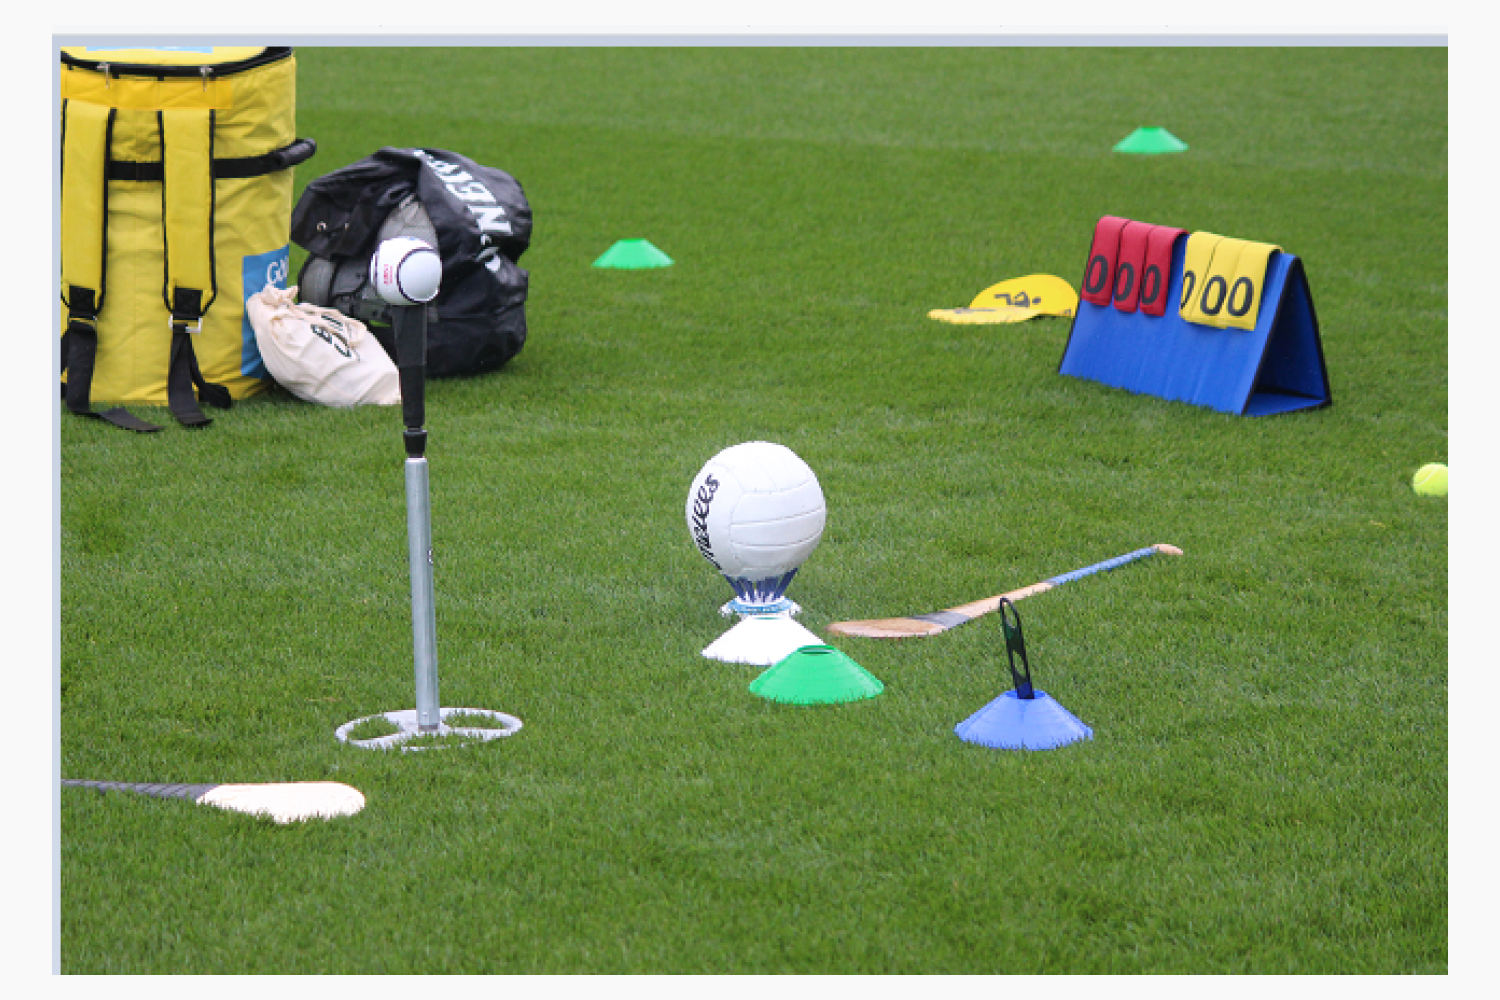 Kilmacud Crokes Healthy Club KC Friday Sports Club' on Friday 4th December from 4-5pm.